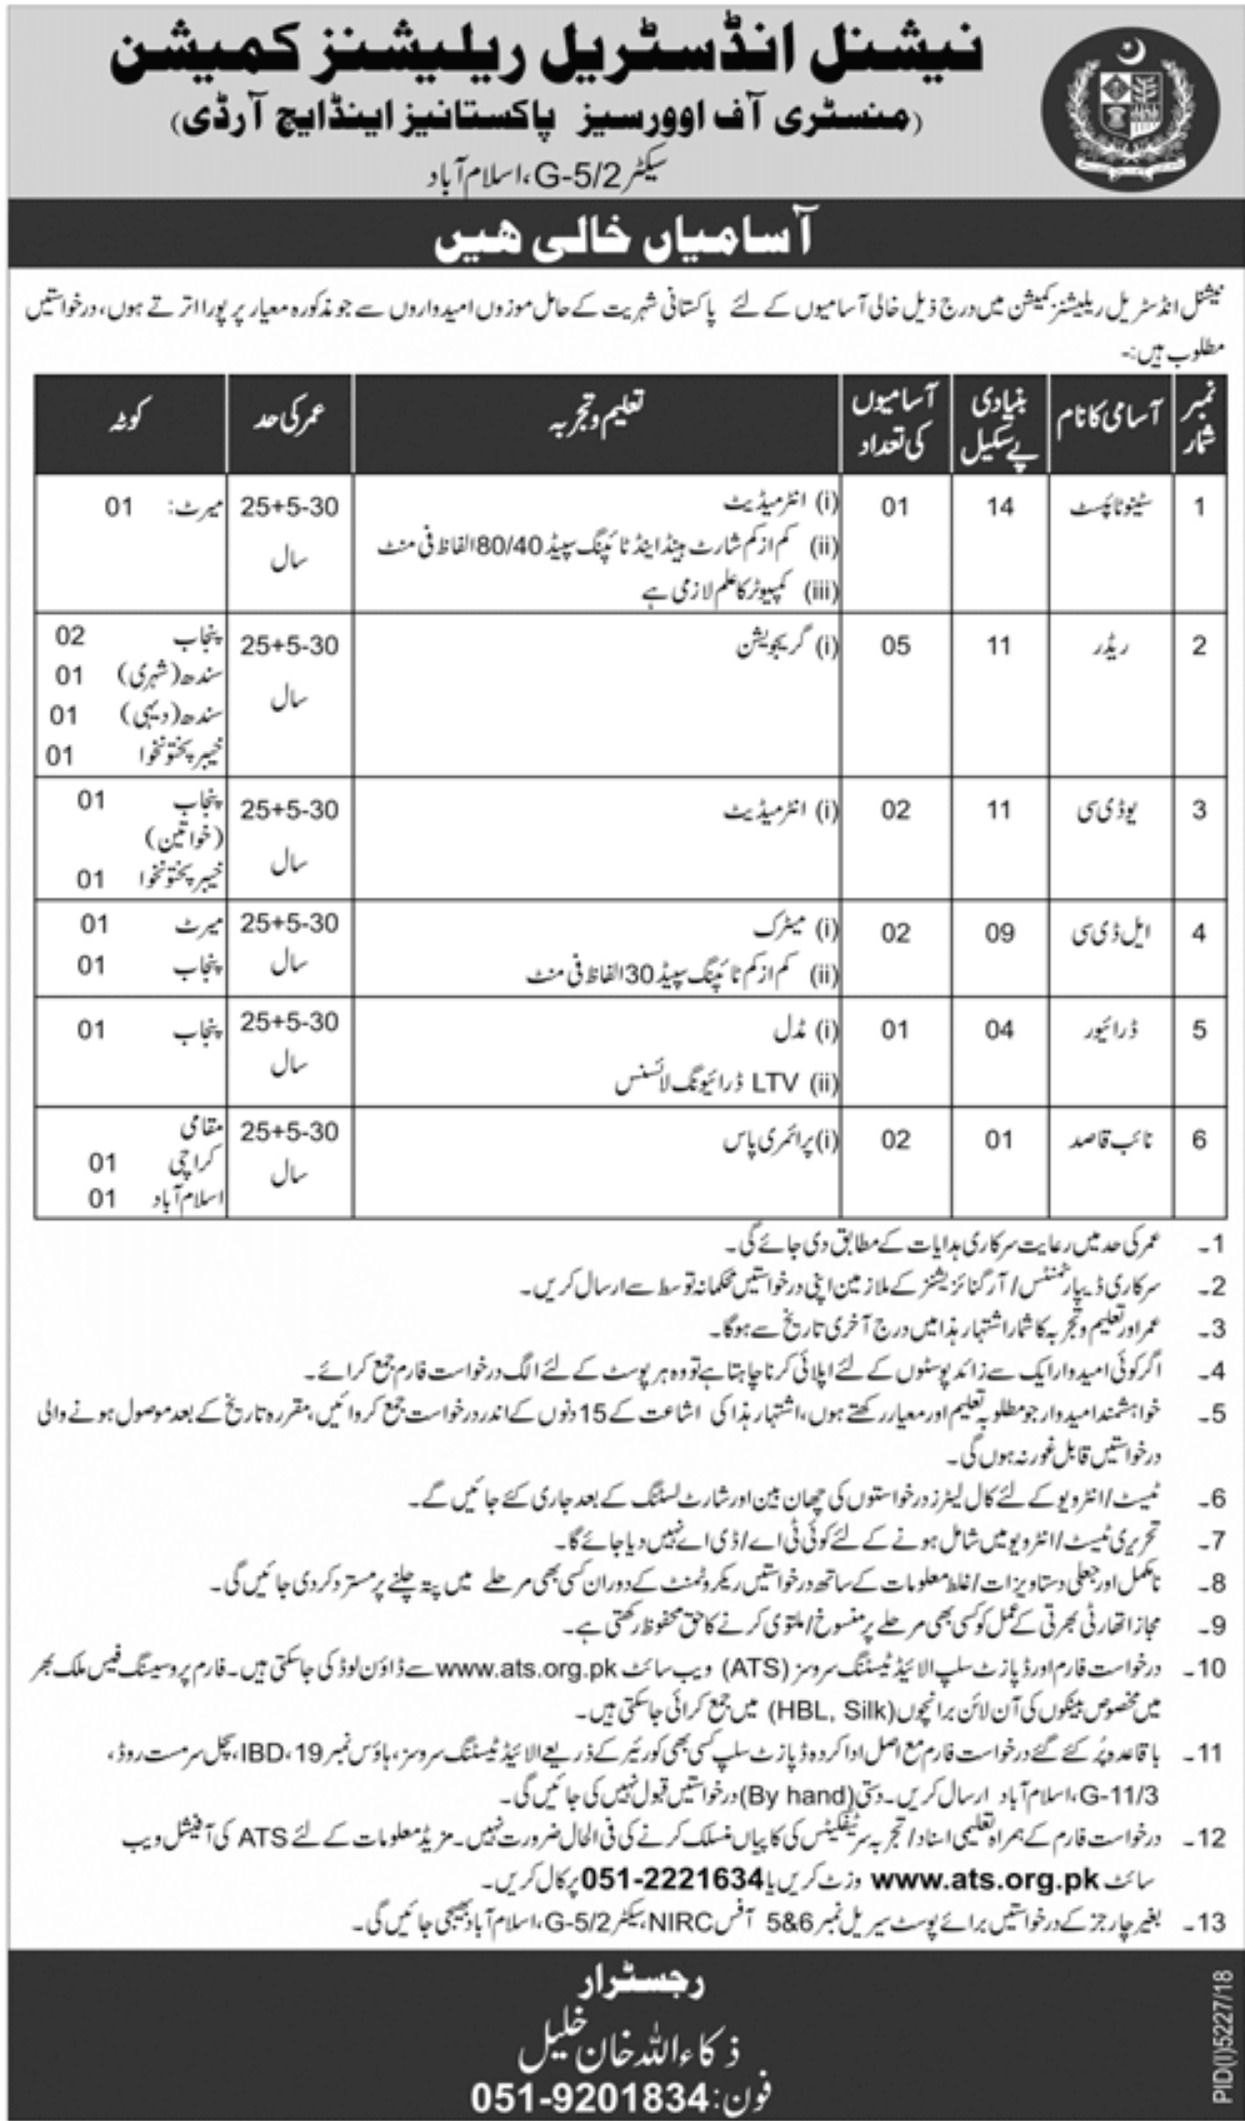 National Industrial Relations Commission NIRC Islamabad Jobs 2019 Ministry of Overseas Pakistanis & HRD